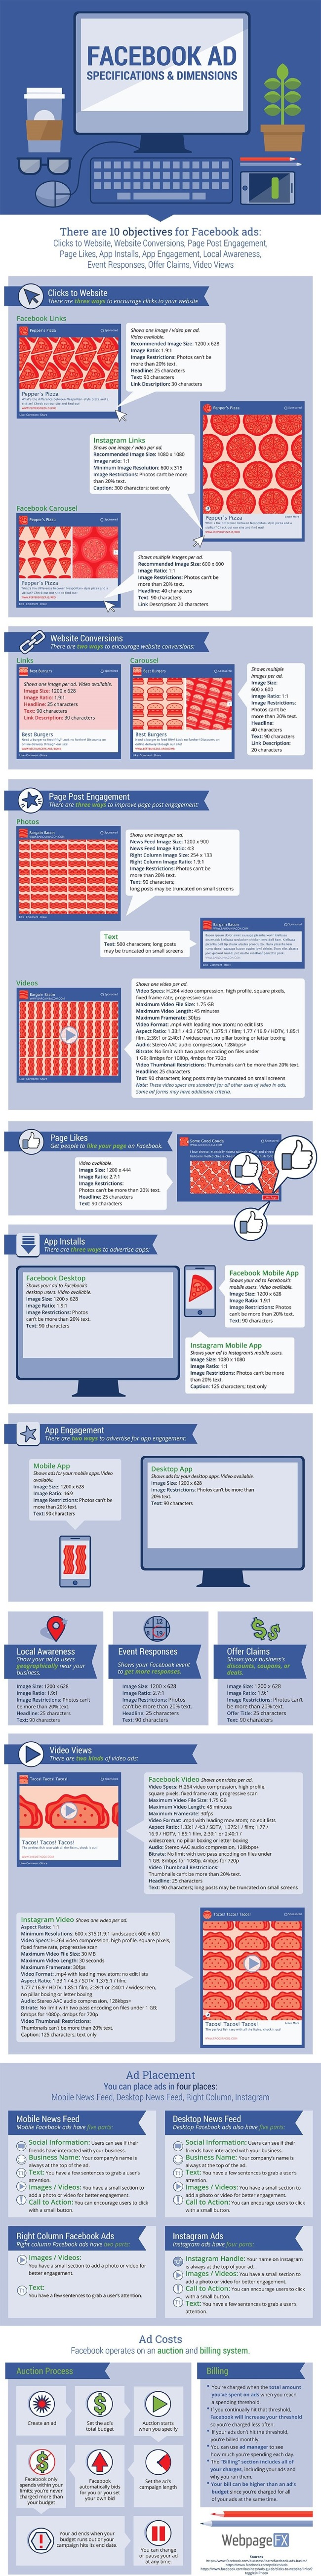 step-by-step-to-2016-facebook-ad-specifications-infographic